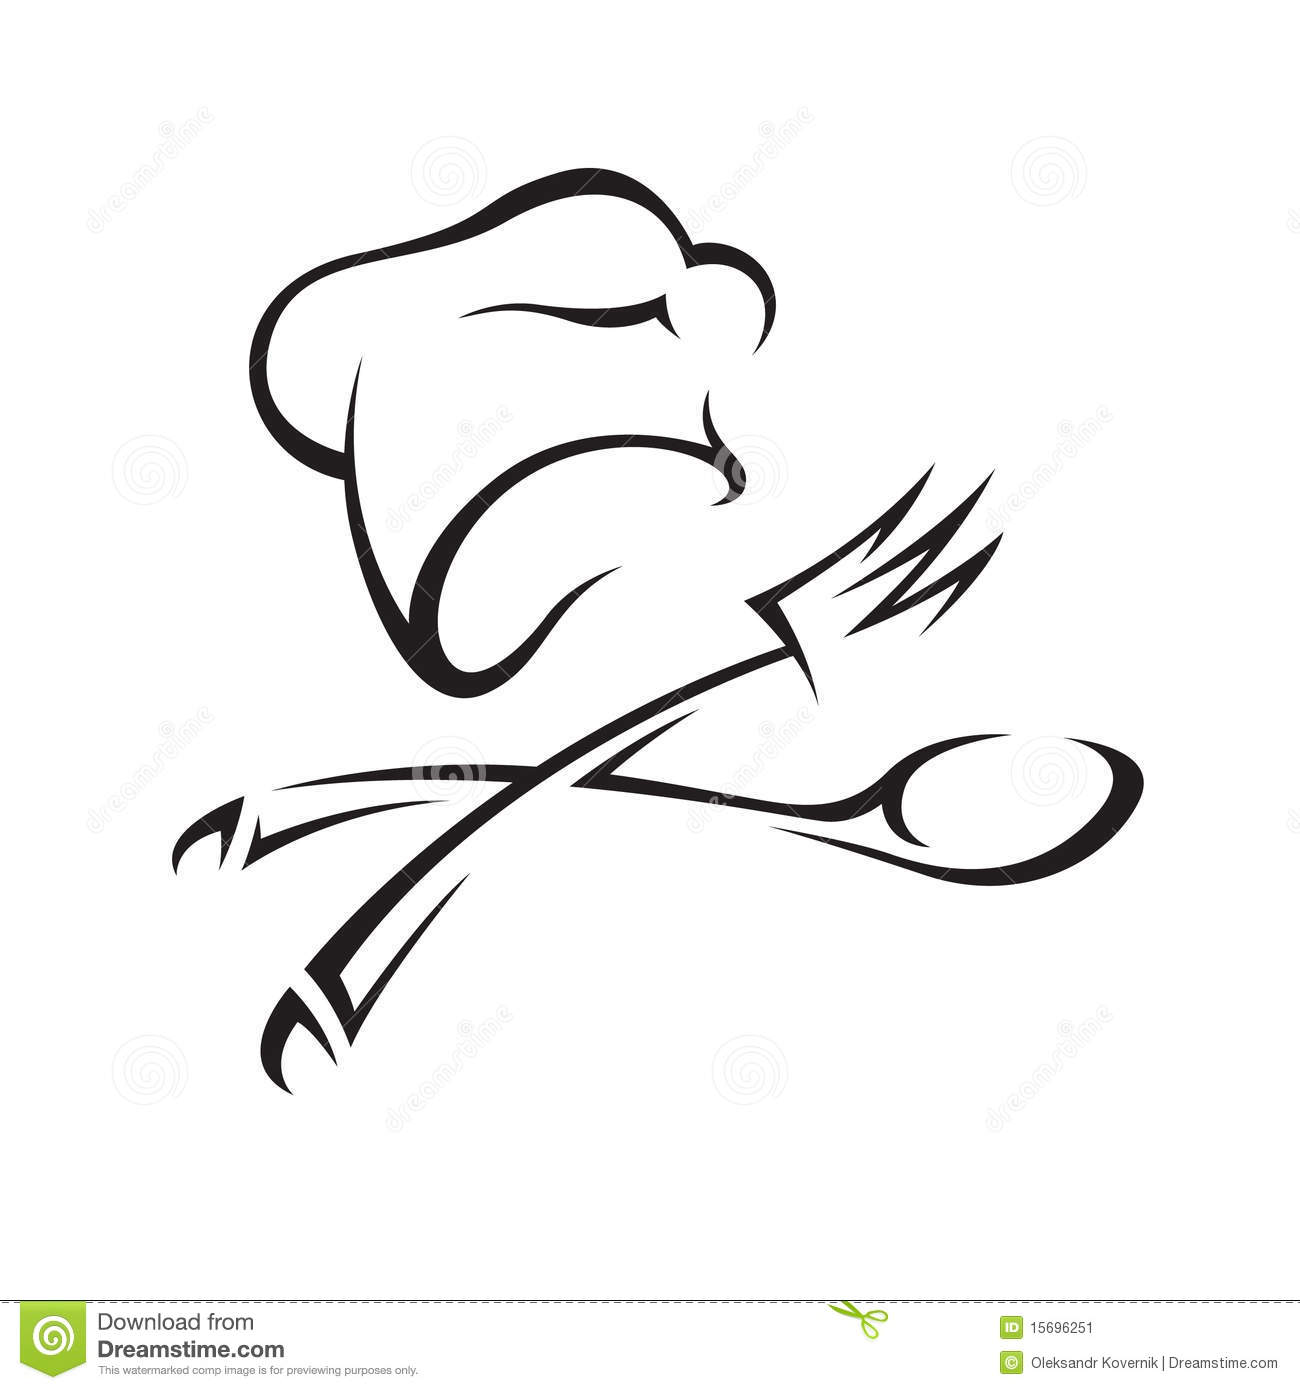 00001 additionally Mustache moreover Rose Silhouette Cliparts further 86360 meat Of Cow as well Black Steak Symbol Vector Illustration On 567555535. on bbq plate